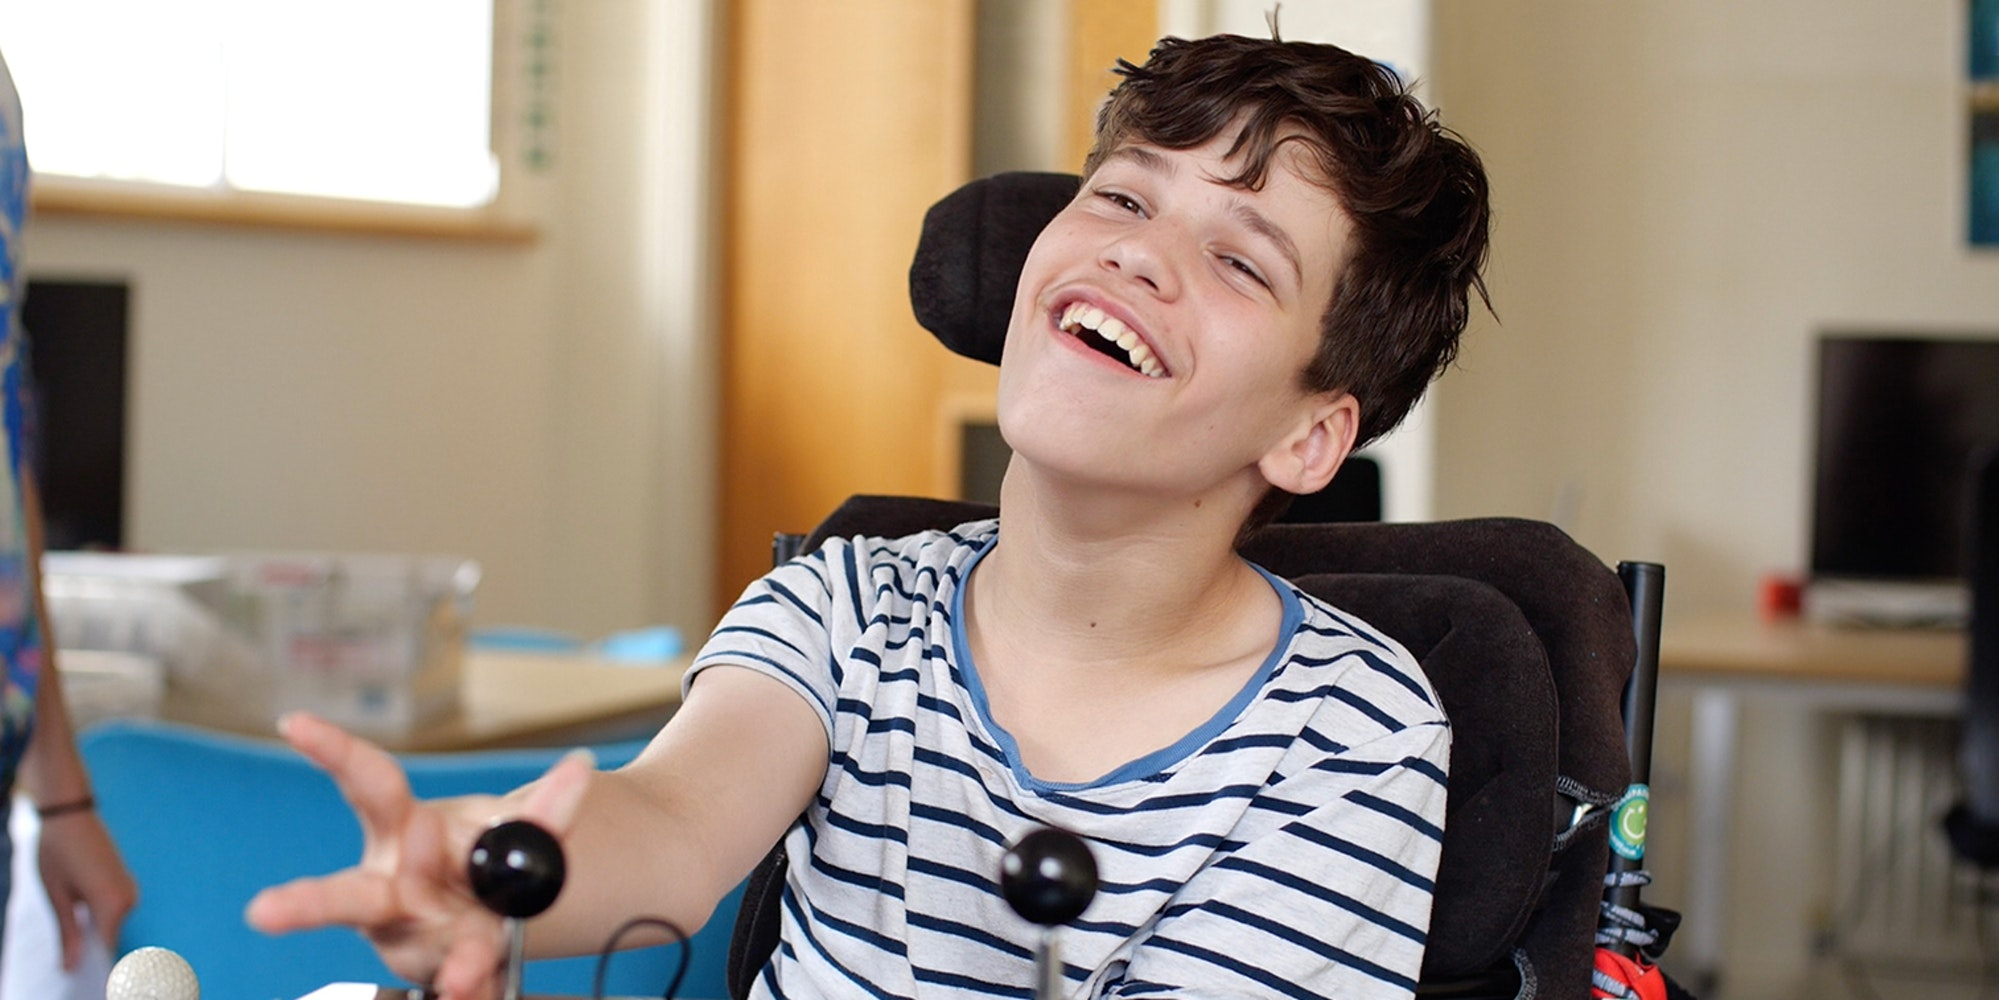 a young boy wearing a blue and white striped tshirt plays with two large joysticks